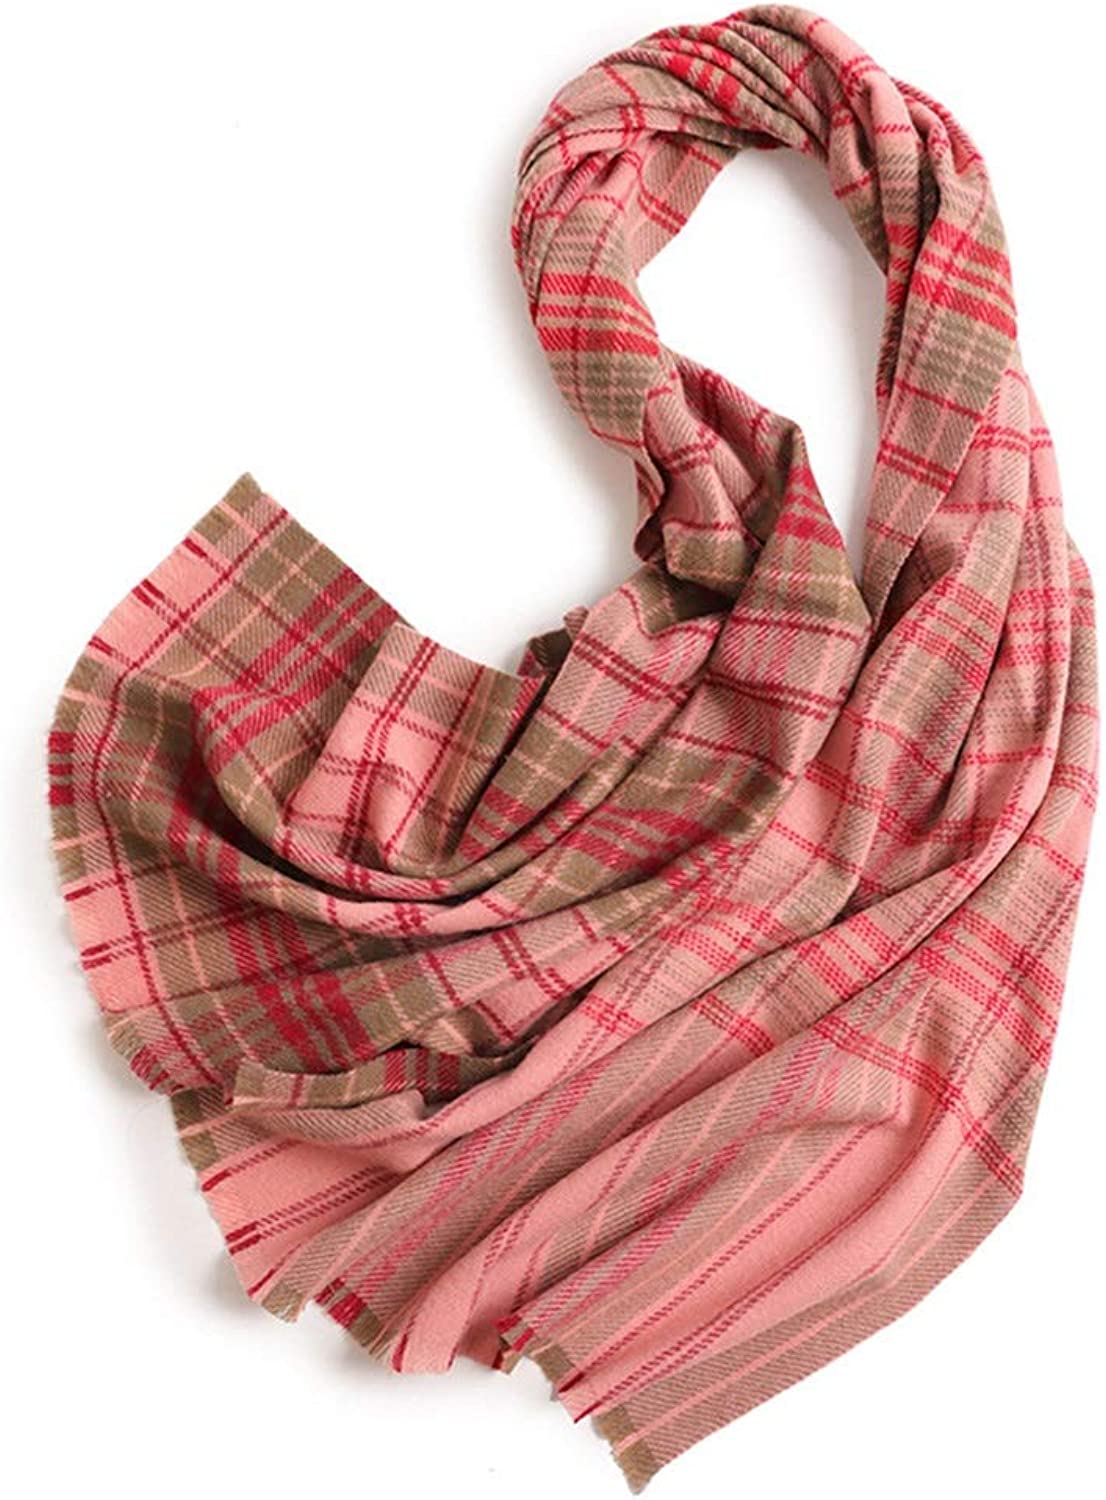 Ladies Scarf Autumn and Winter Wool Plaid Warm Shawl Warm Soft MultiFunction Collar Scarf Fashion (color   Green, Size   One Size)